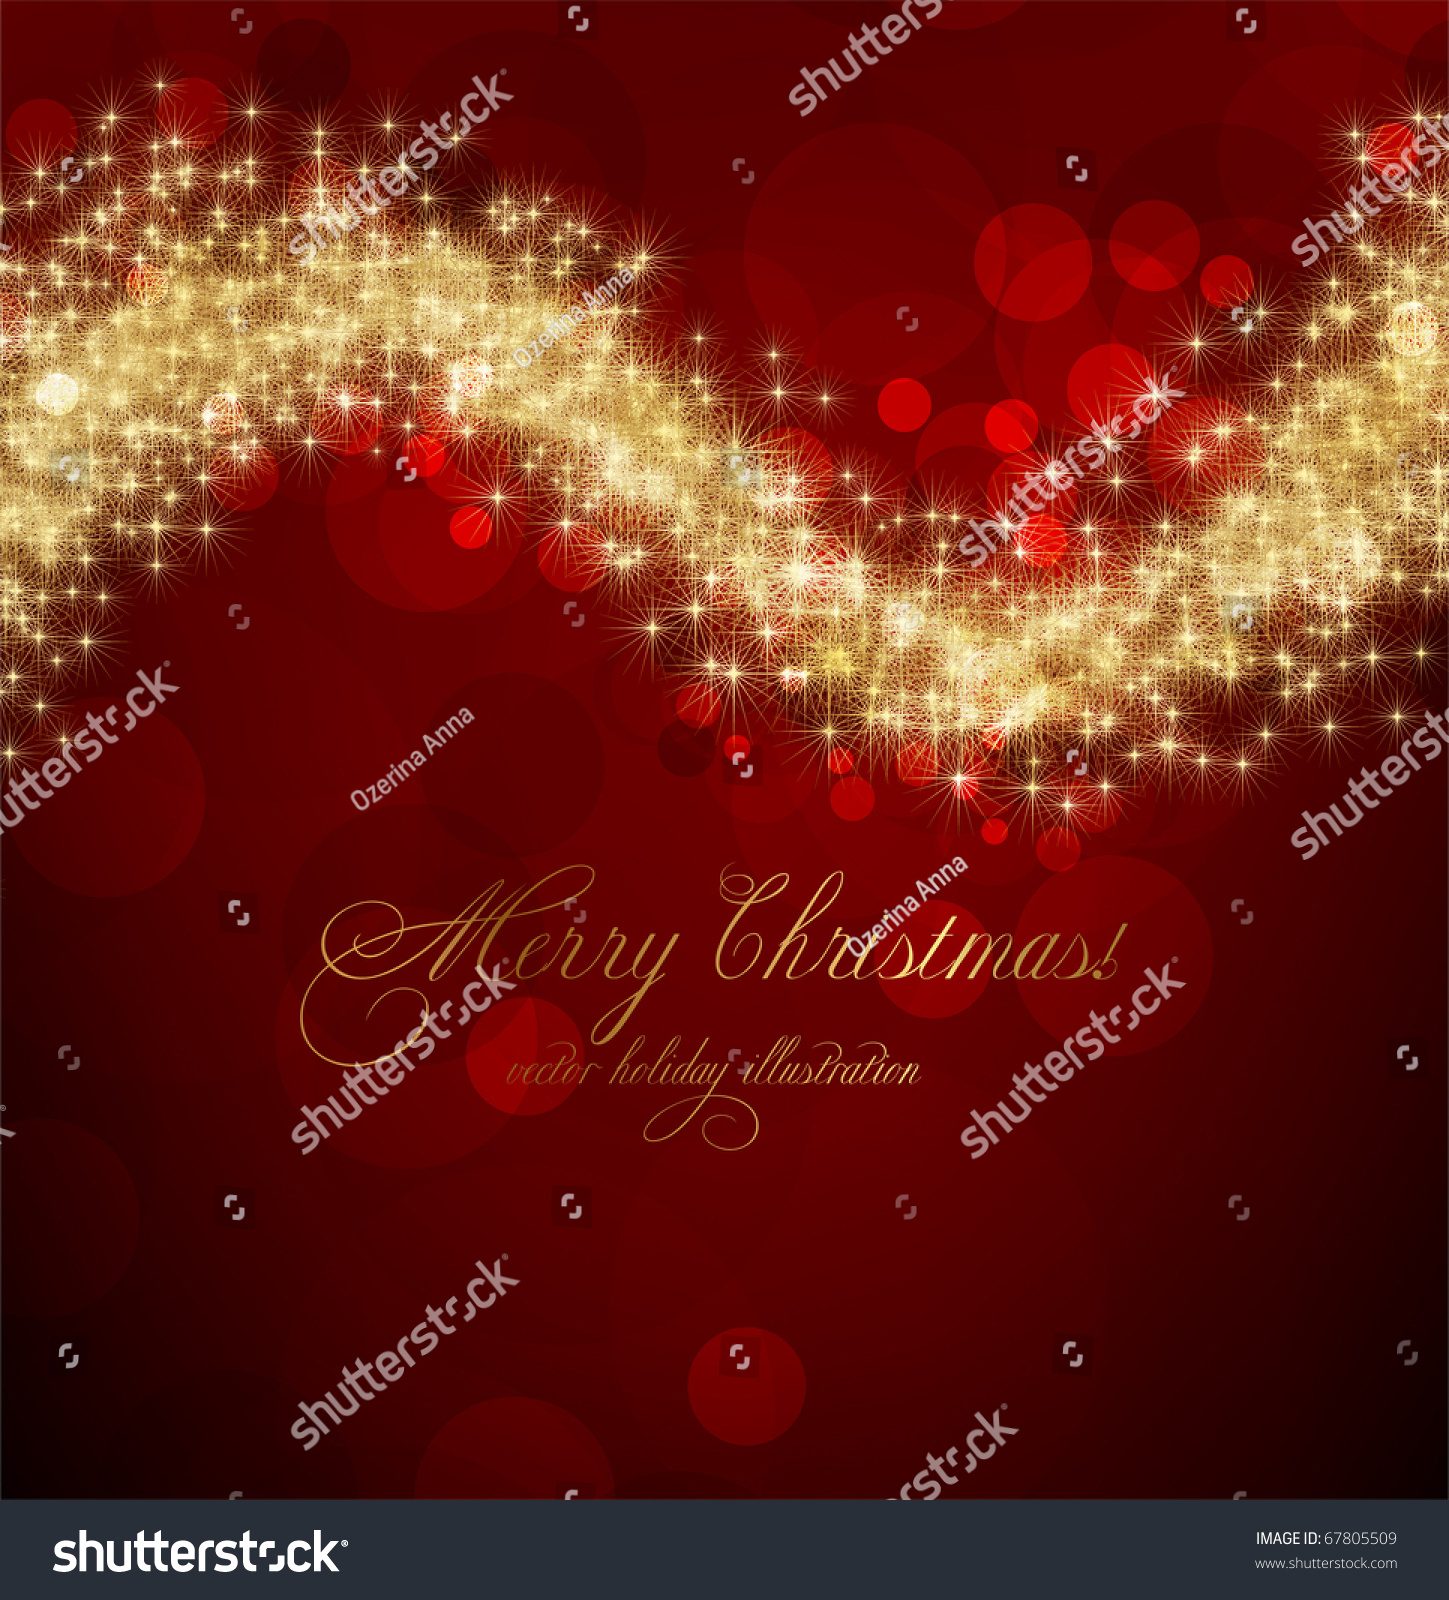 elegant christmas background place for new year text save to a lightbox